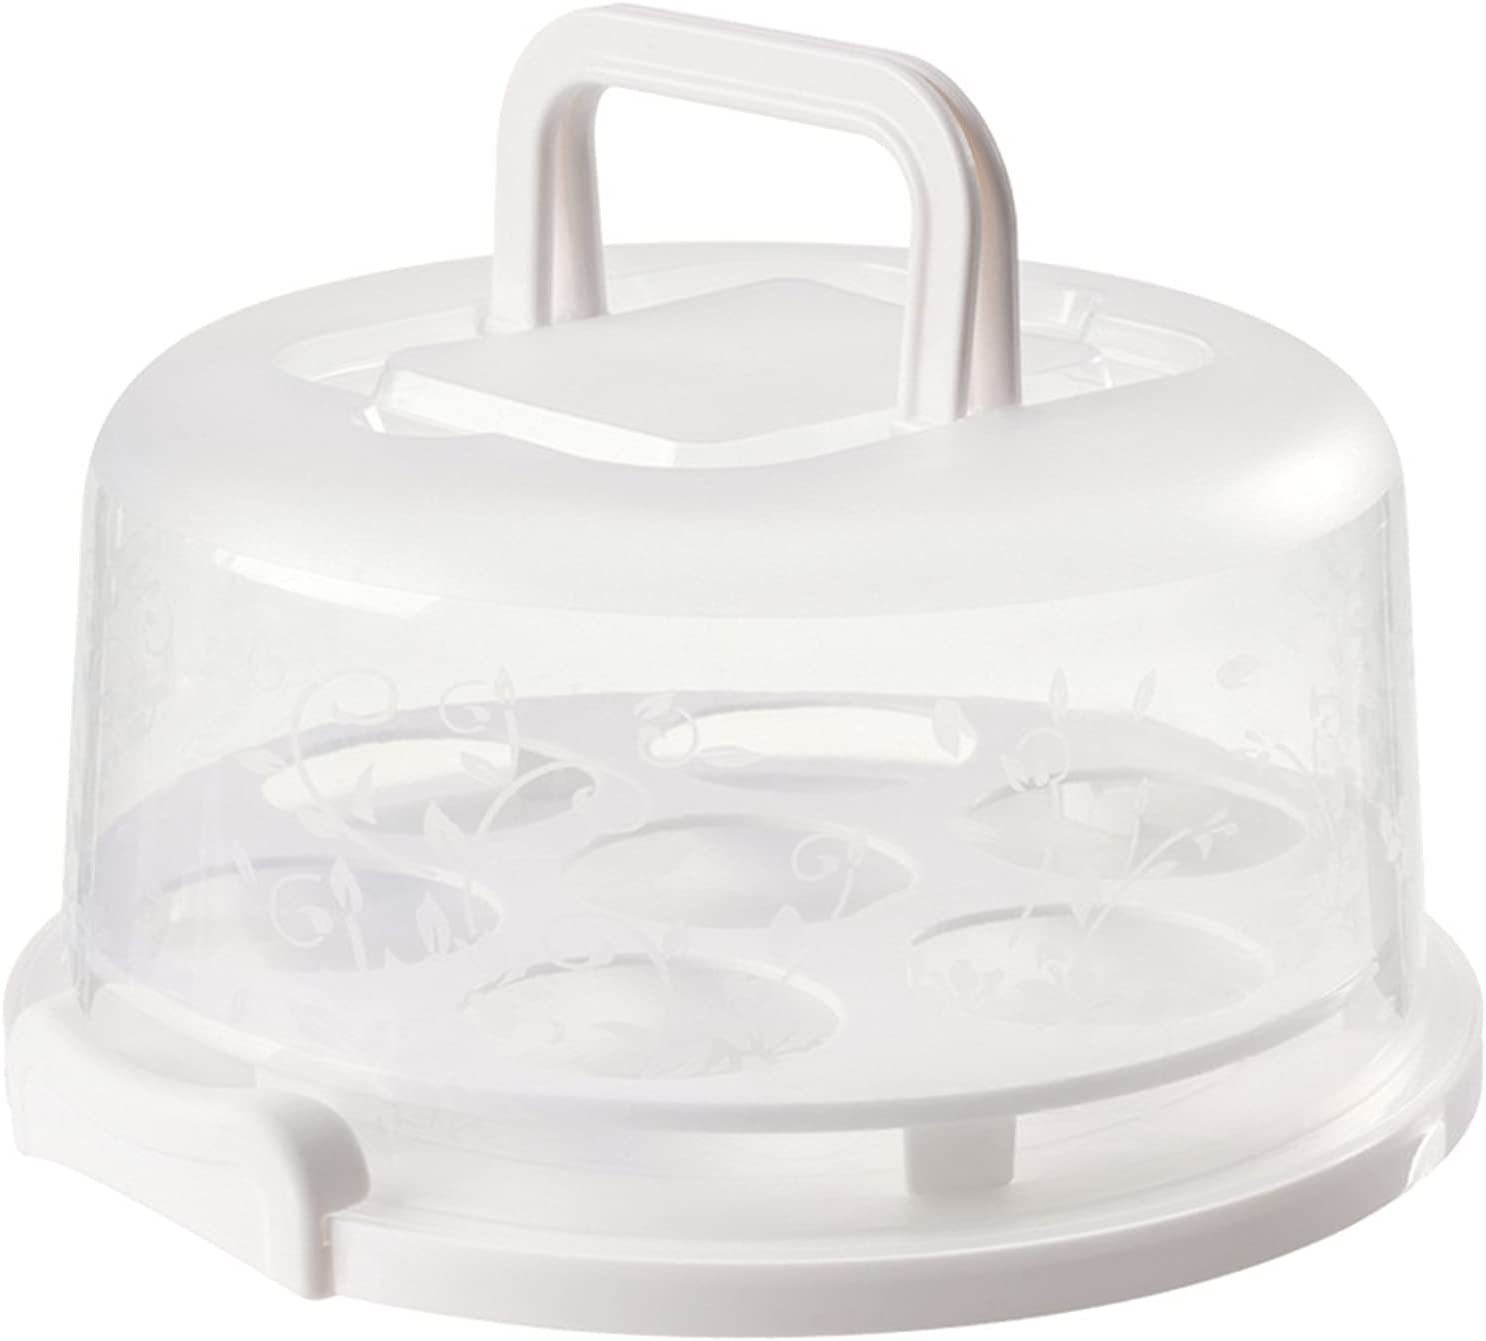 Portable Cream Cake Carriers Storage Birthday Popular products Round Box Bo Limited time trial price